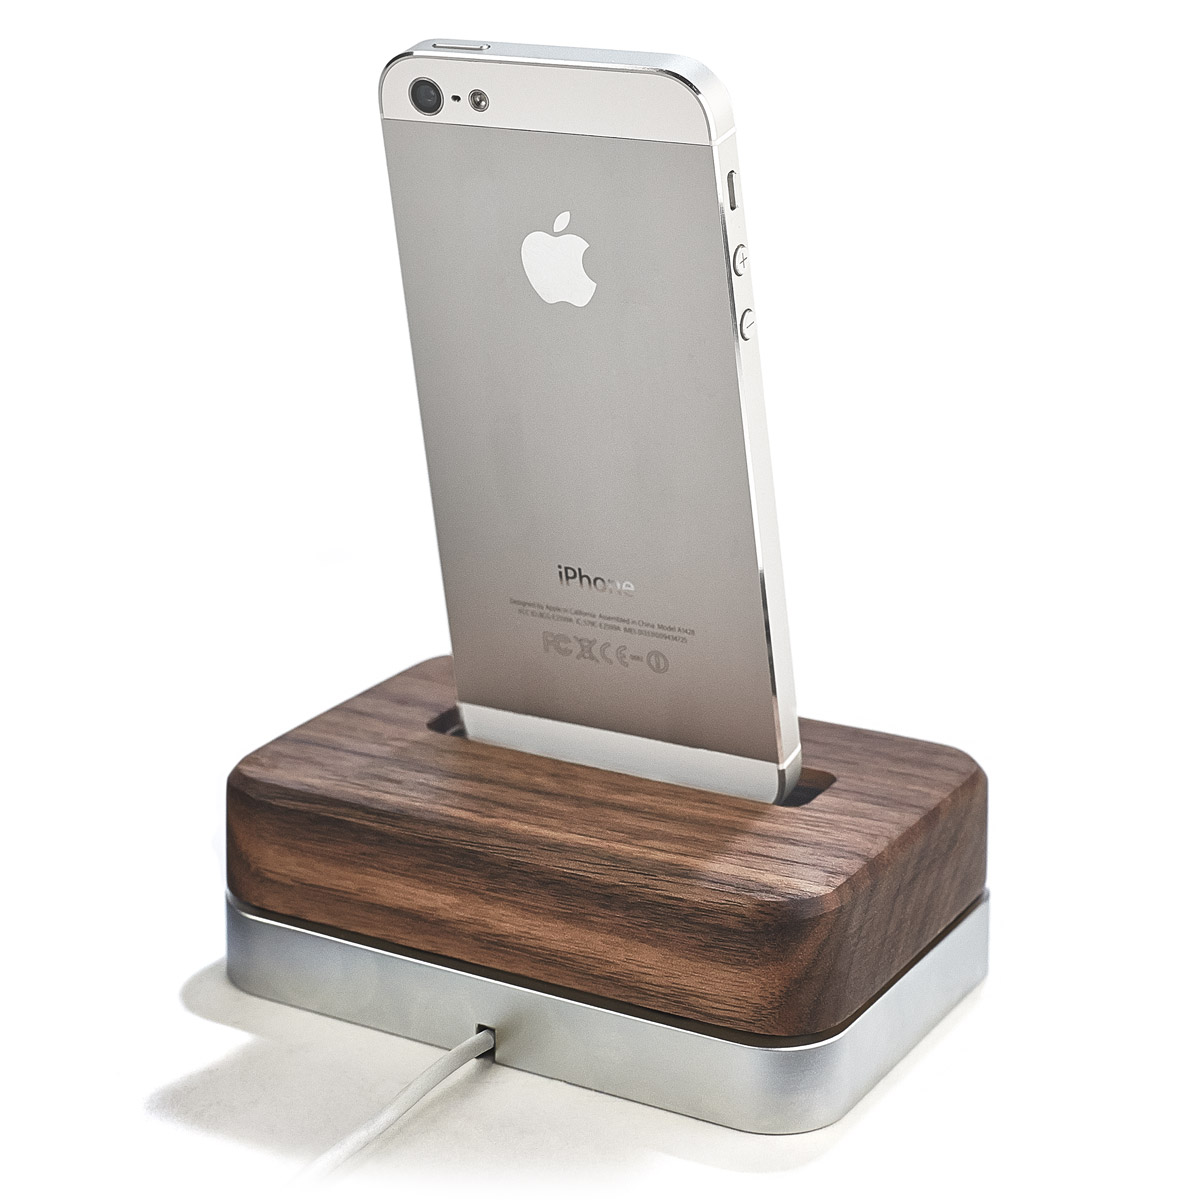 Defunct - WALNUT-IPHONE-DOCK-STAINLESS-STEEL